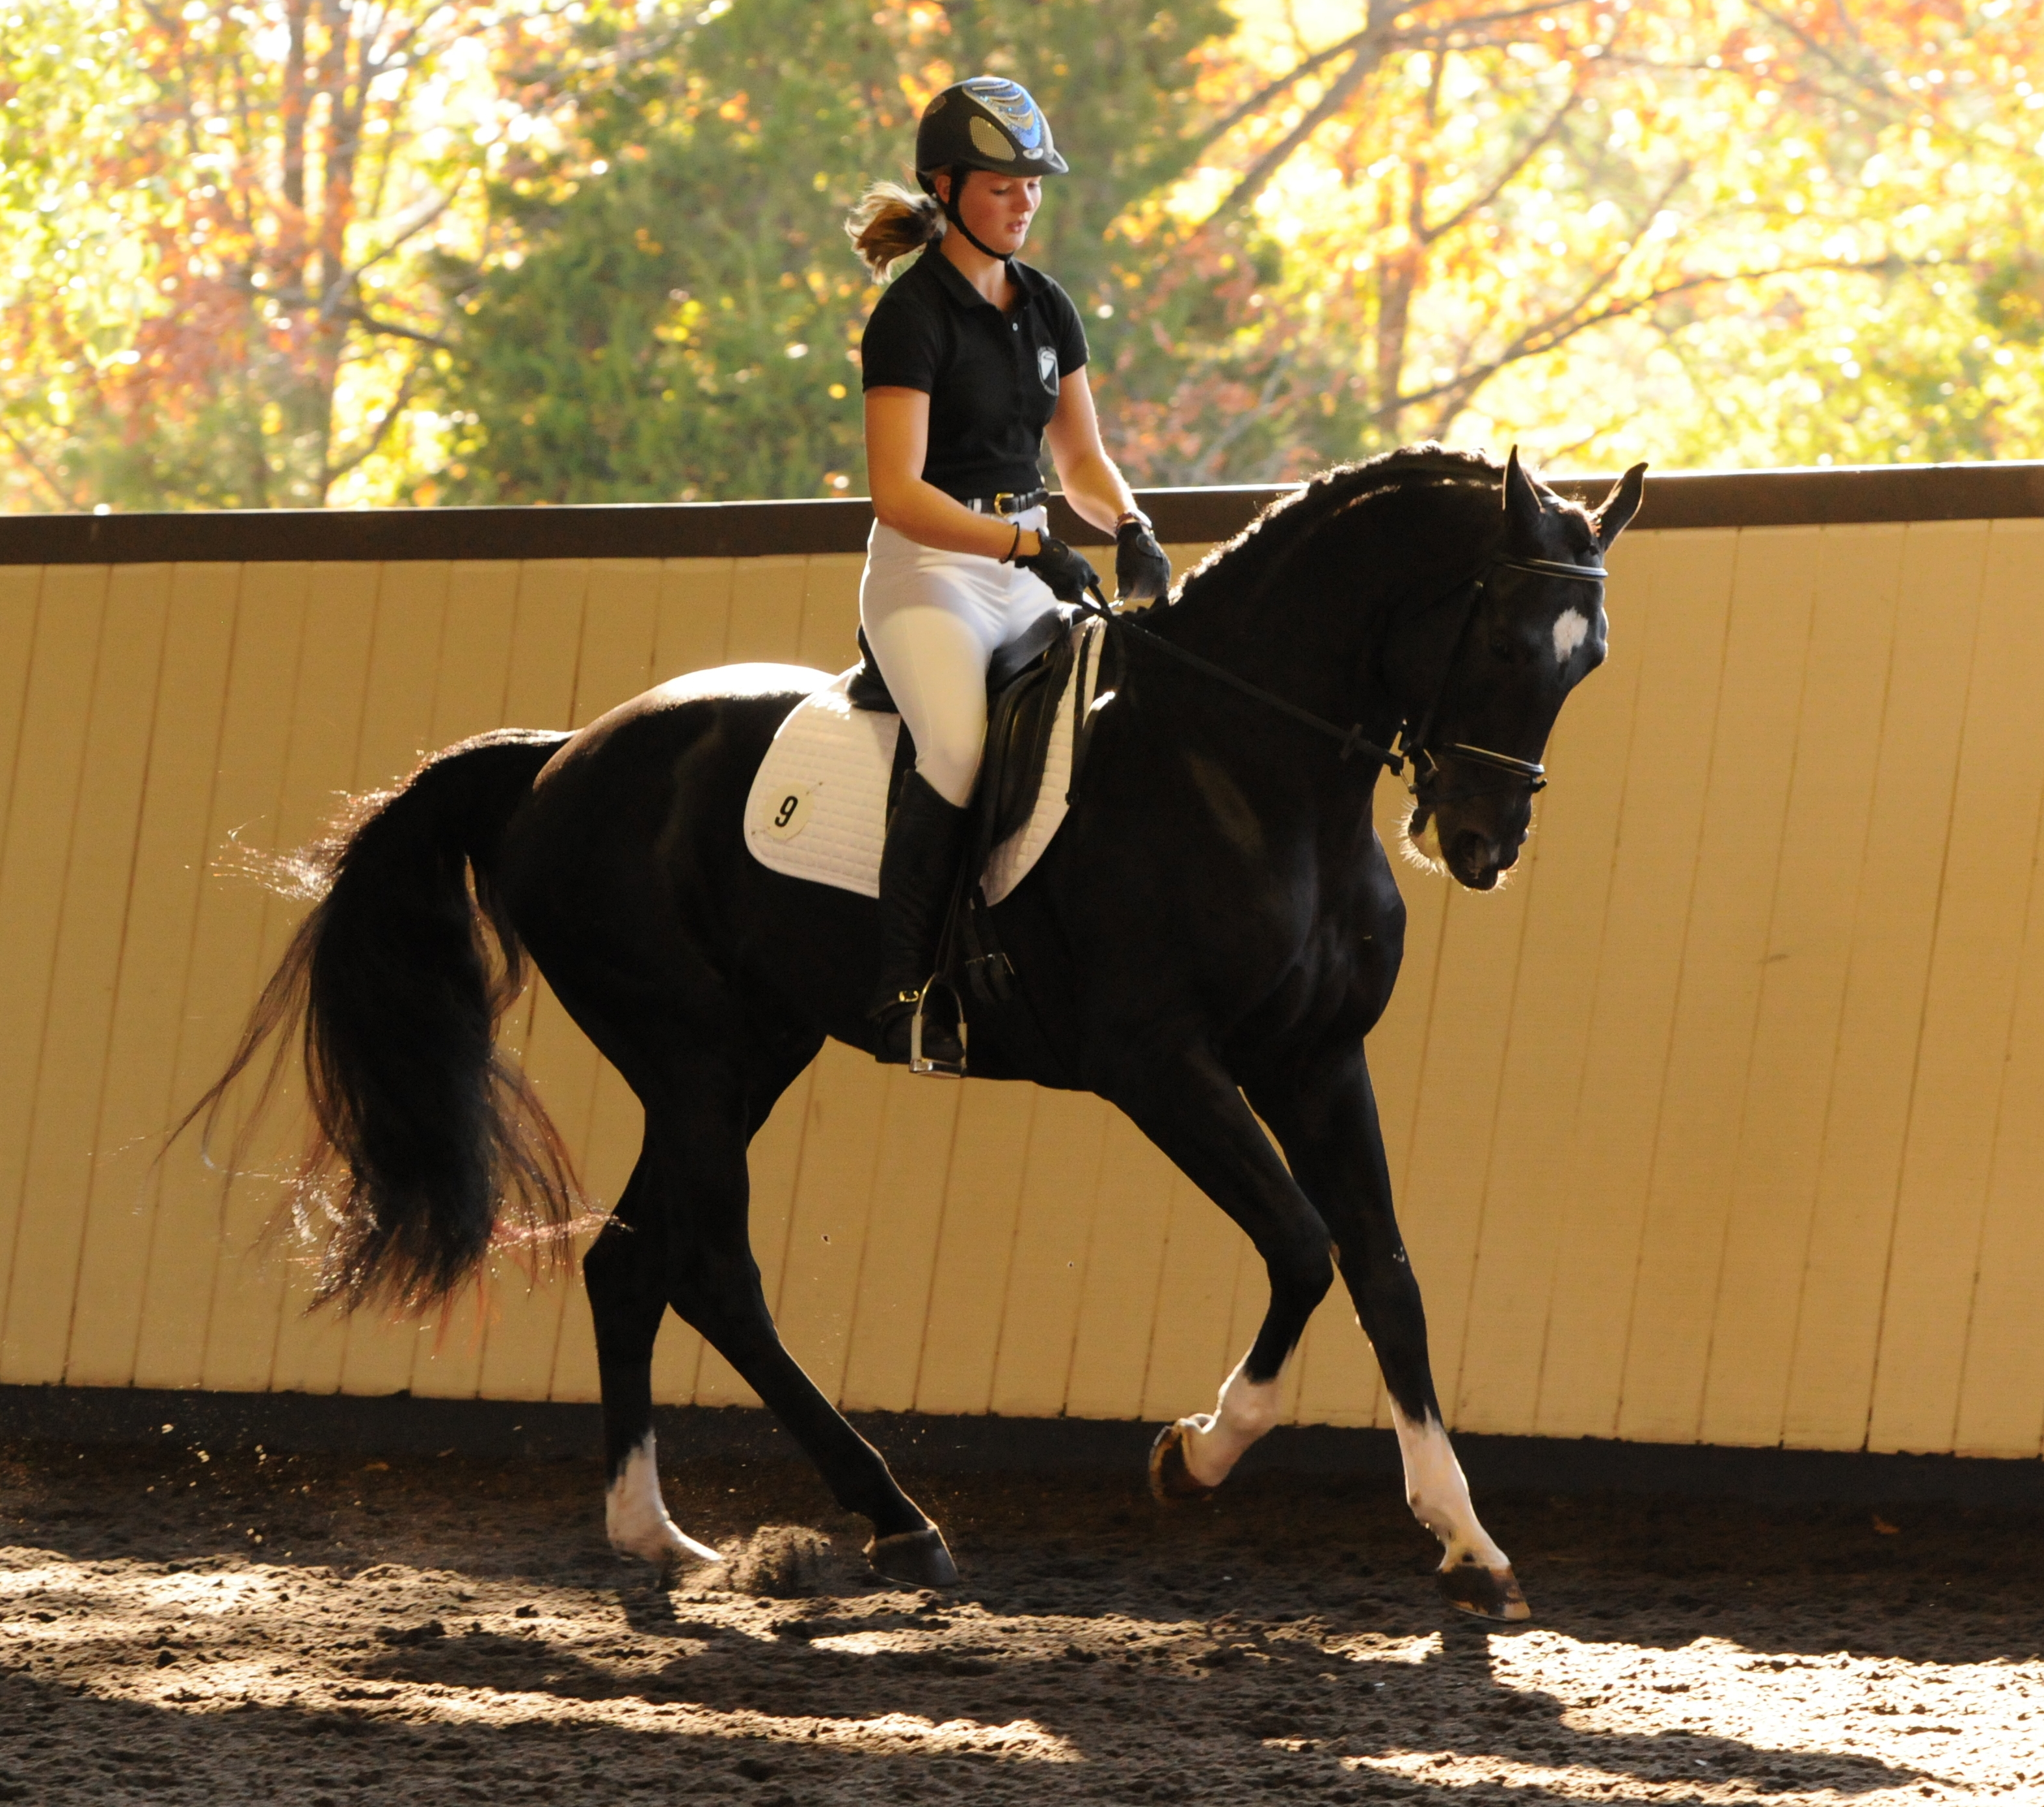 Balanchine Right Canter